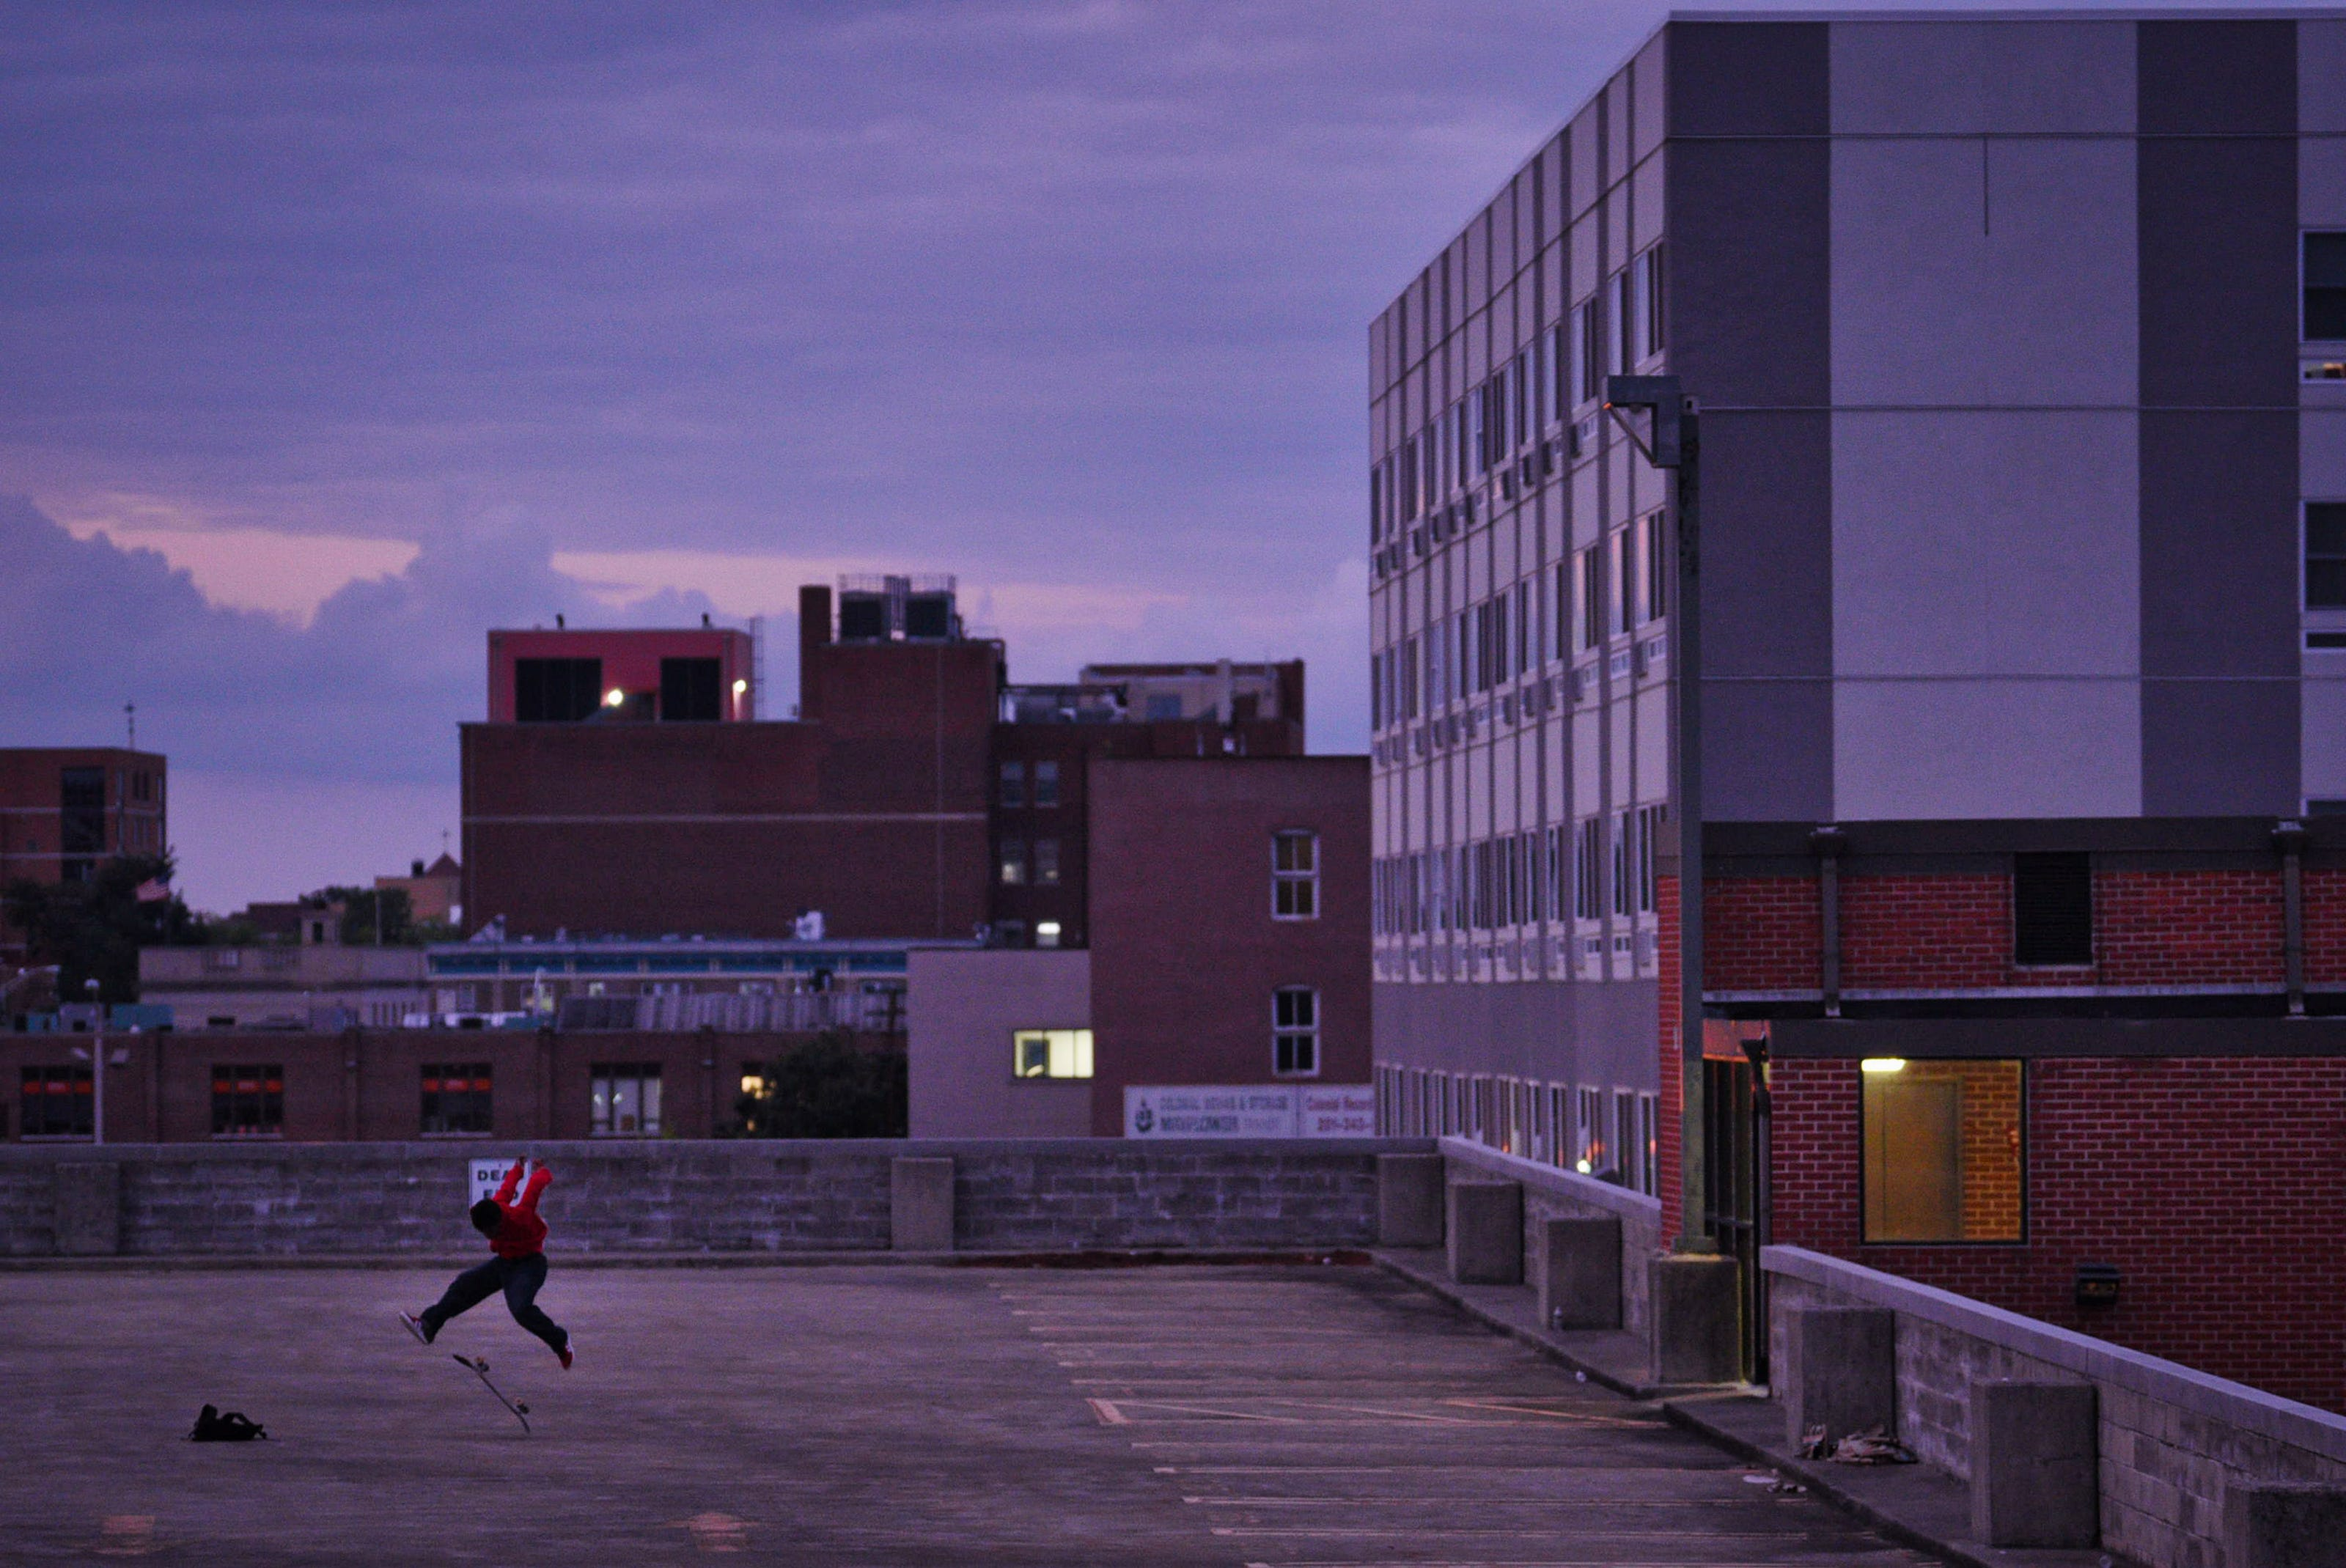 """""""It is relaxing and nobody is here,"""" says Zachary Hampton, 16, of Hackensack, who practices skateboarding on a parking garage roof as the sun sets in Hackensack on 08/04/21. He started skateboarding about a year ago. Zachary wants to become a film director or a real estate agent in the future."""